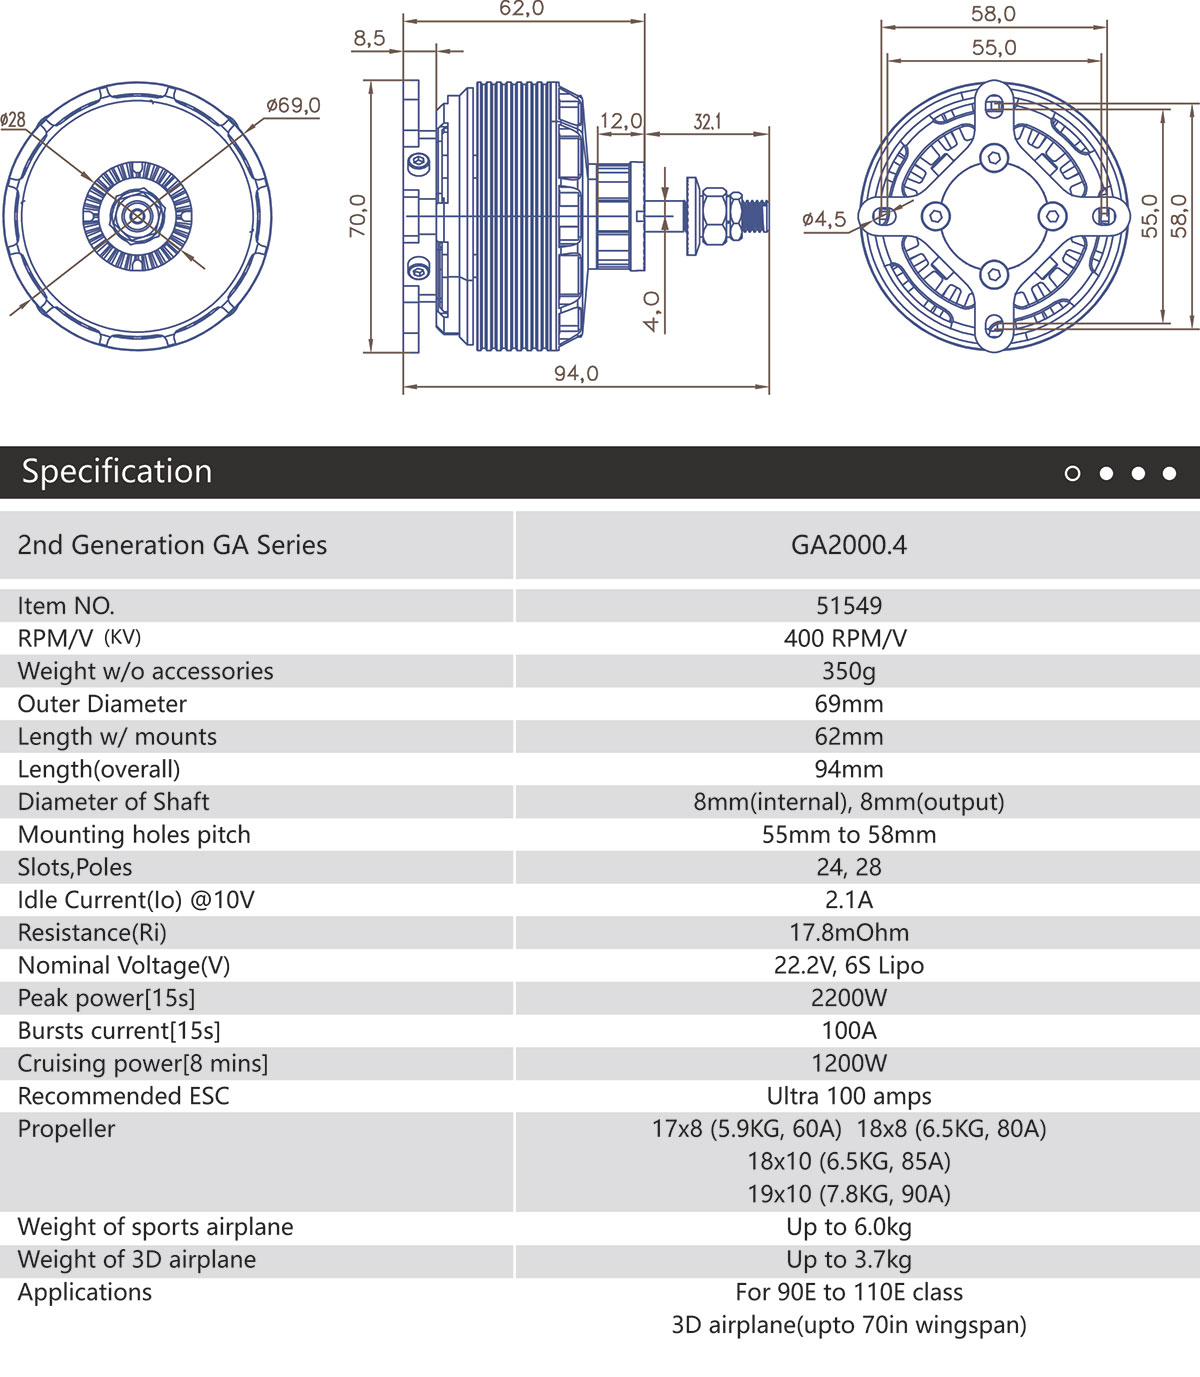 GA2000.4 Specifications